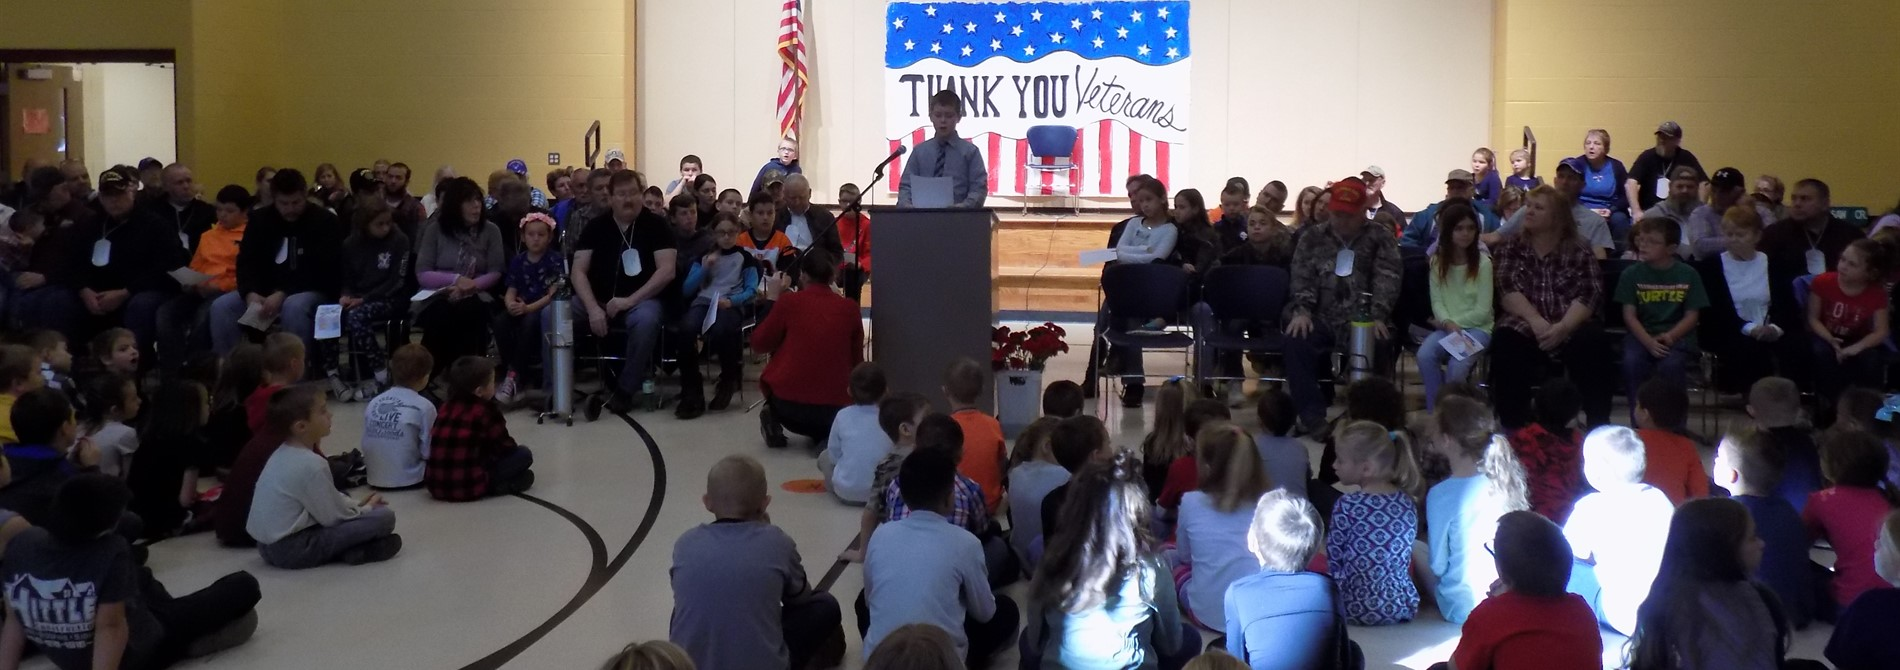 Veterans' Day Celebration Assembly